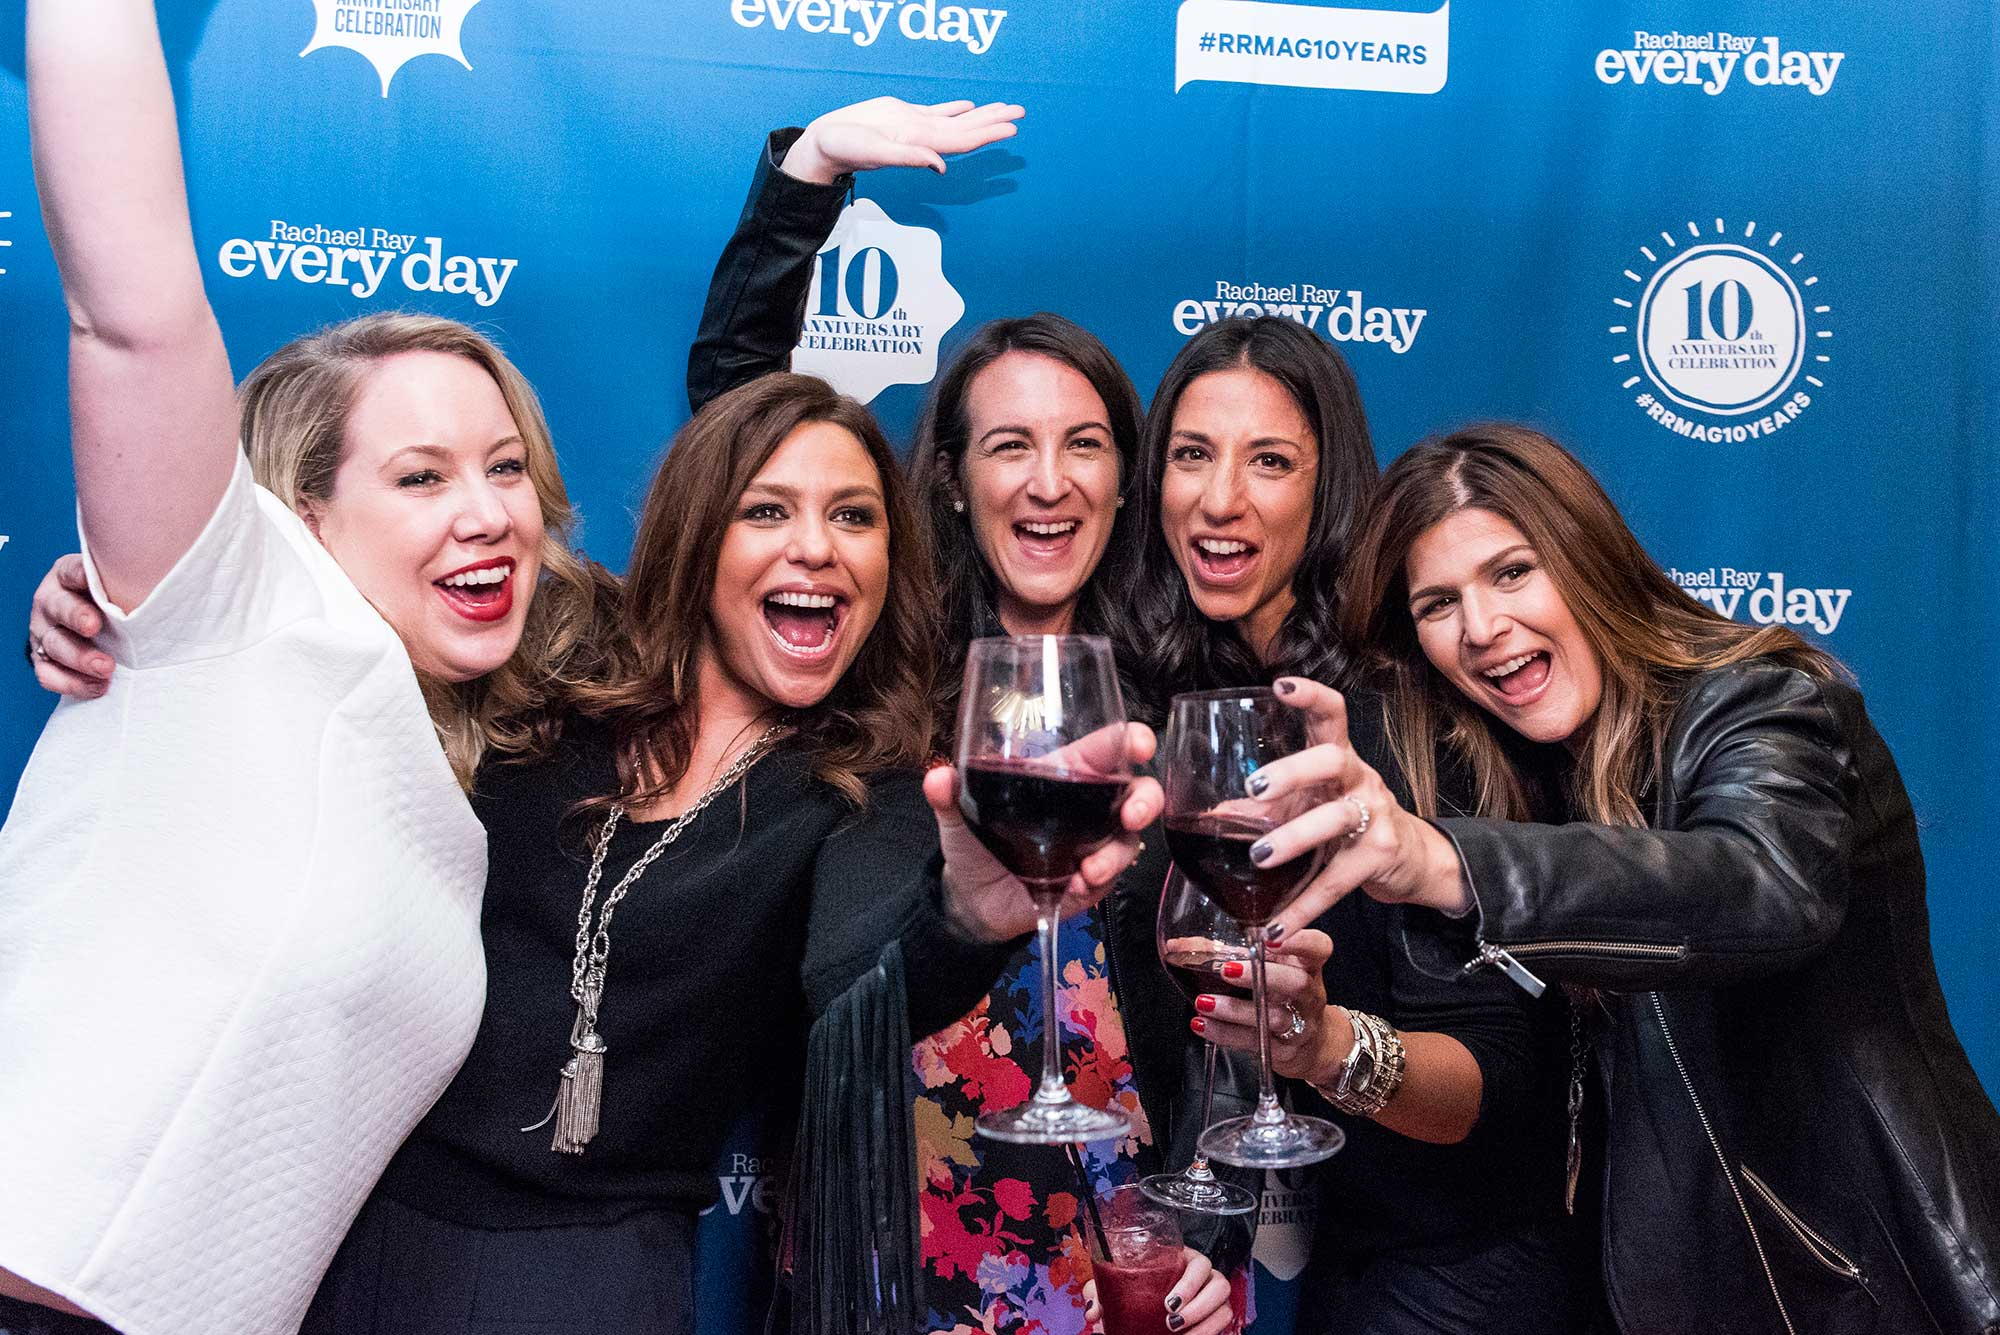 Rachel Ray and colleagues enjoy the VIP Party celebrating the 10 year anniversary of her magazine.